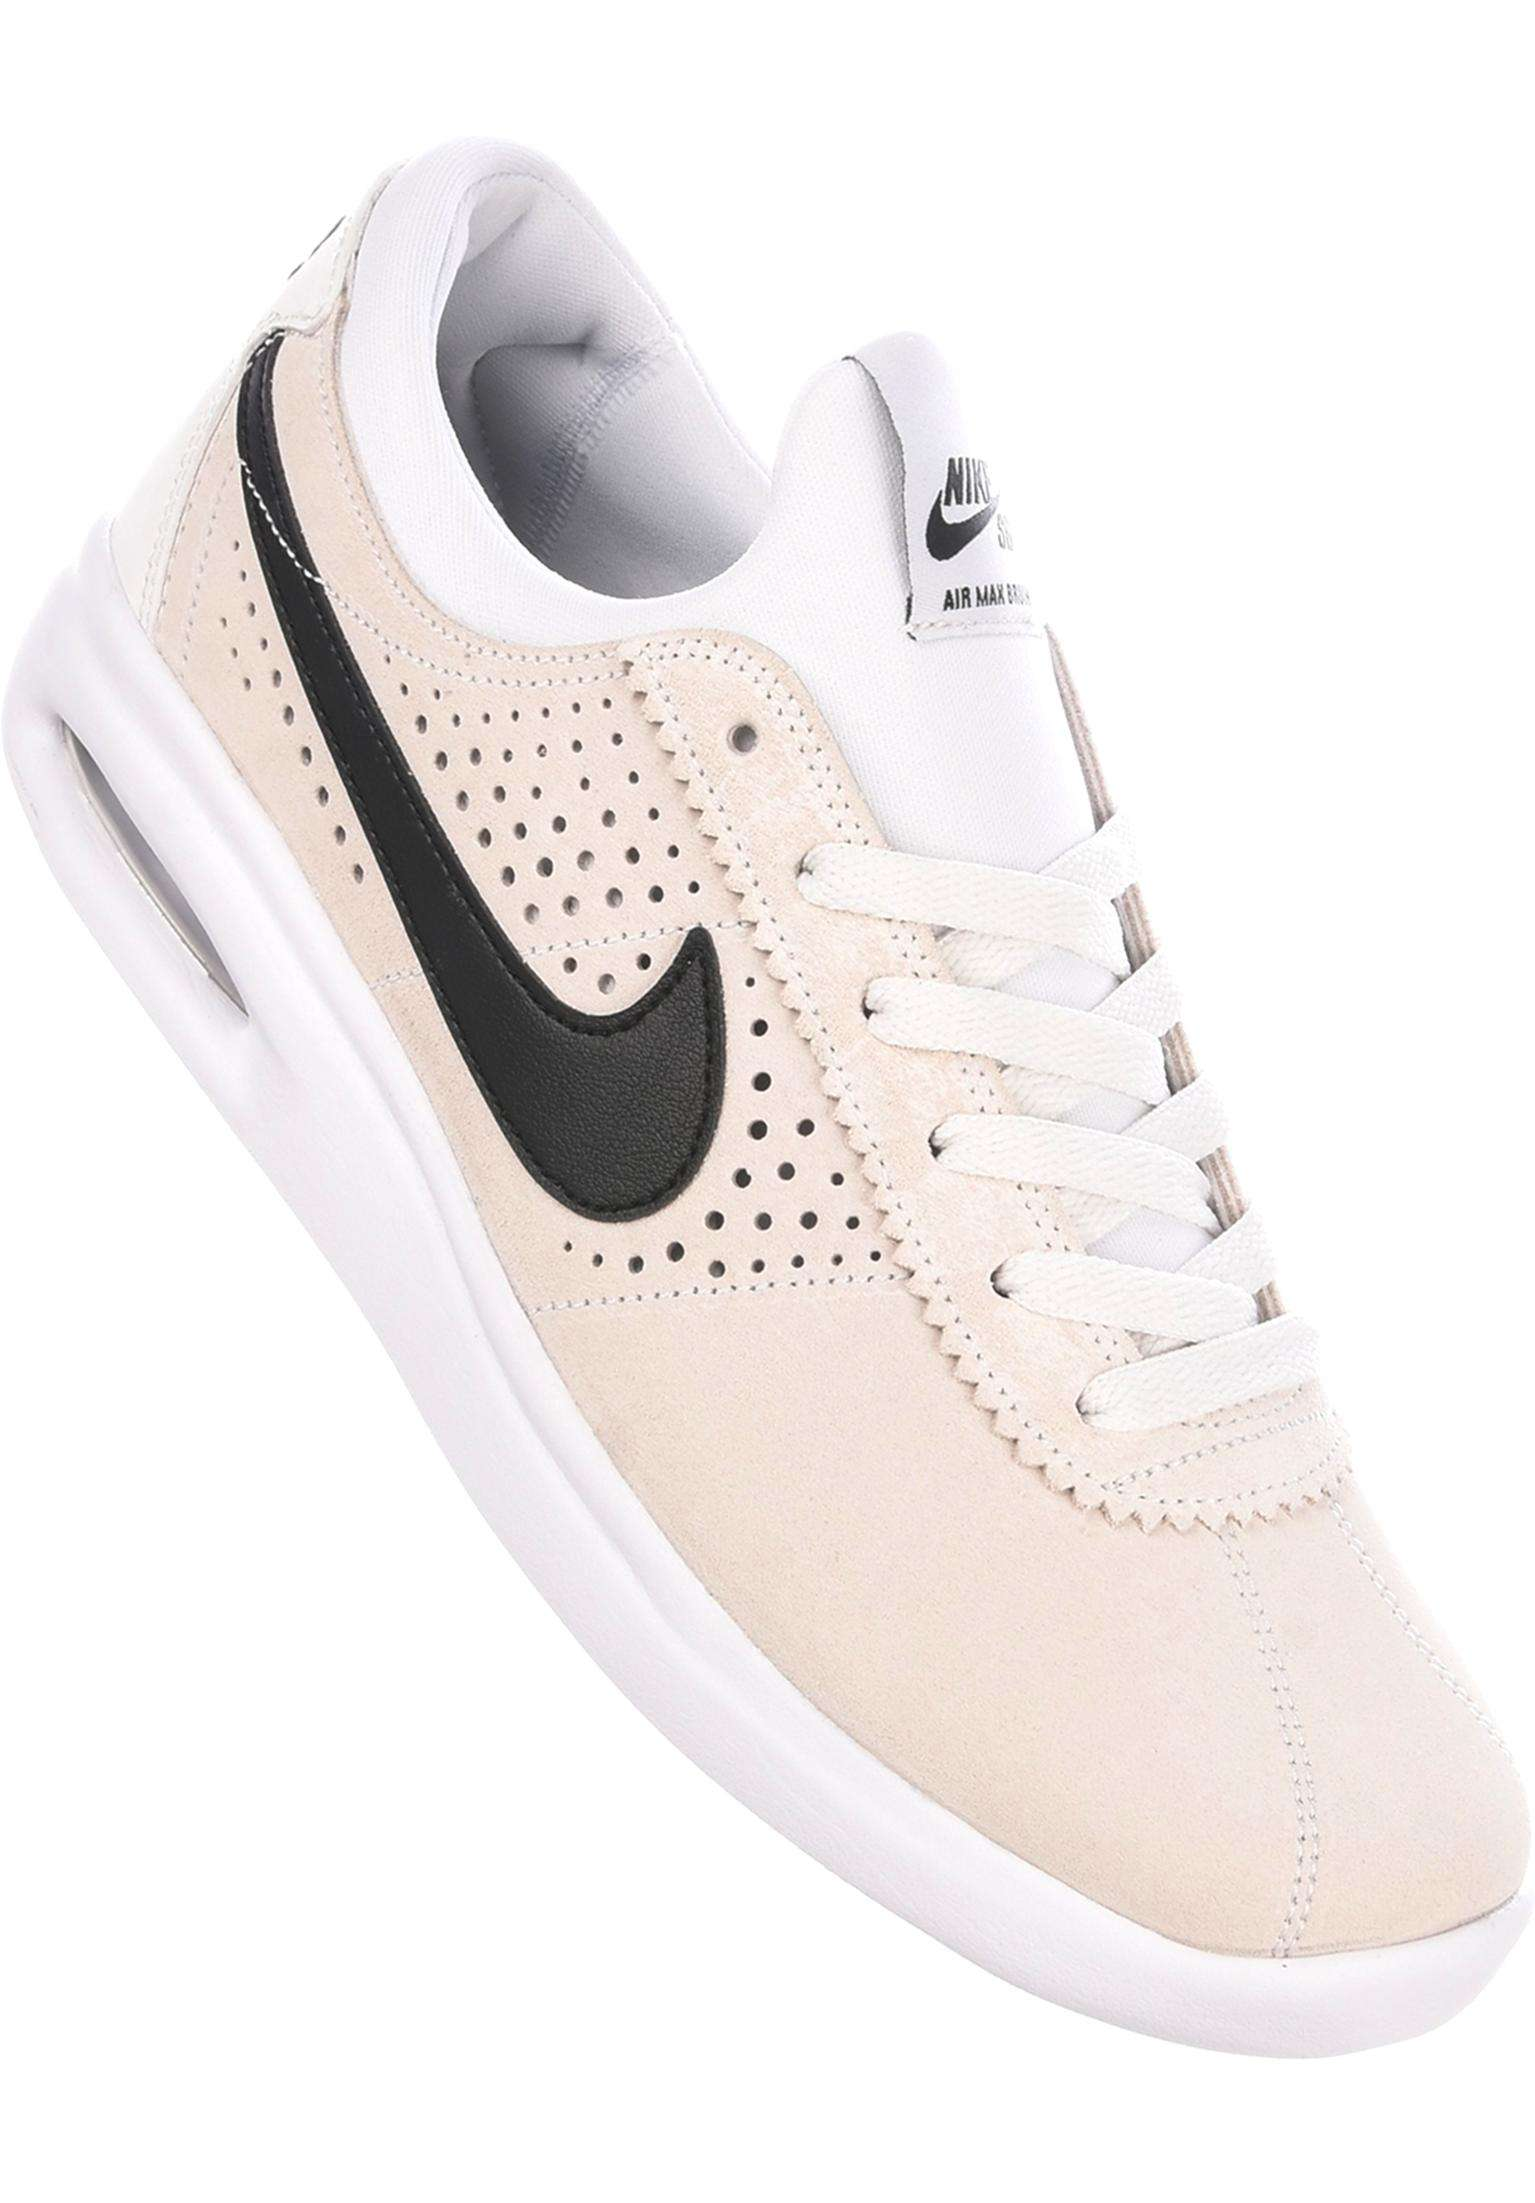 best loved c8040 b7d10 Air Max Bruin Vapor Nike SB All Shoes in summitwhite-black-white for Men    Titus